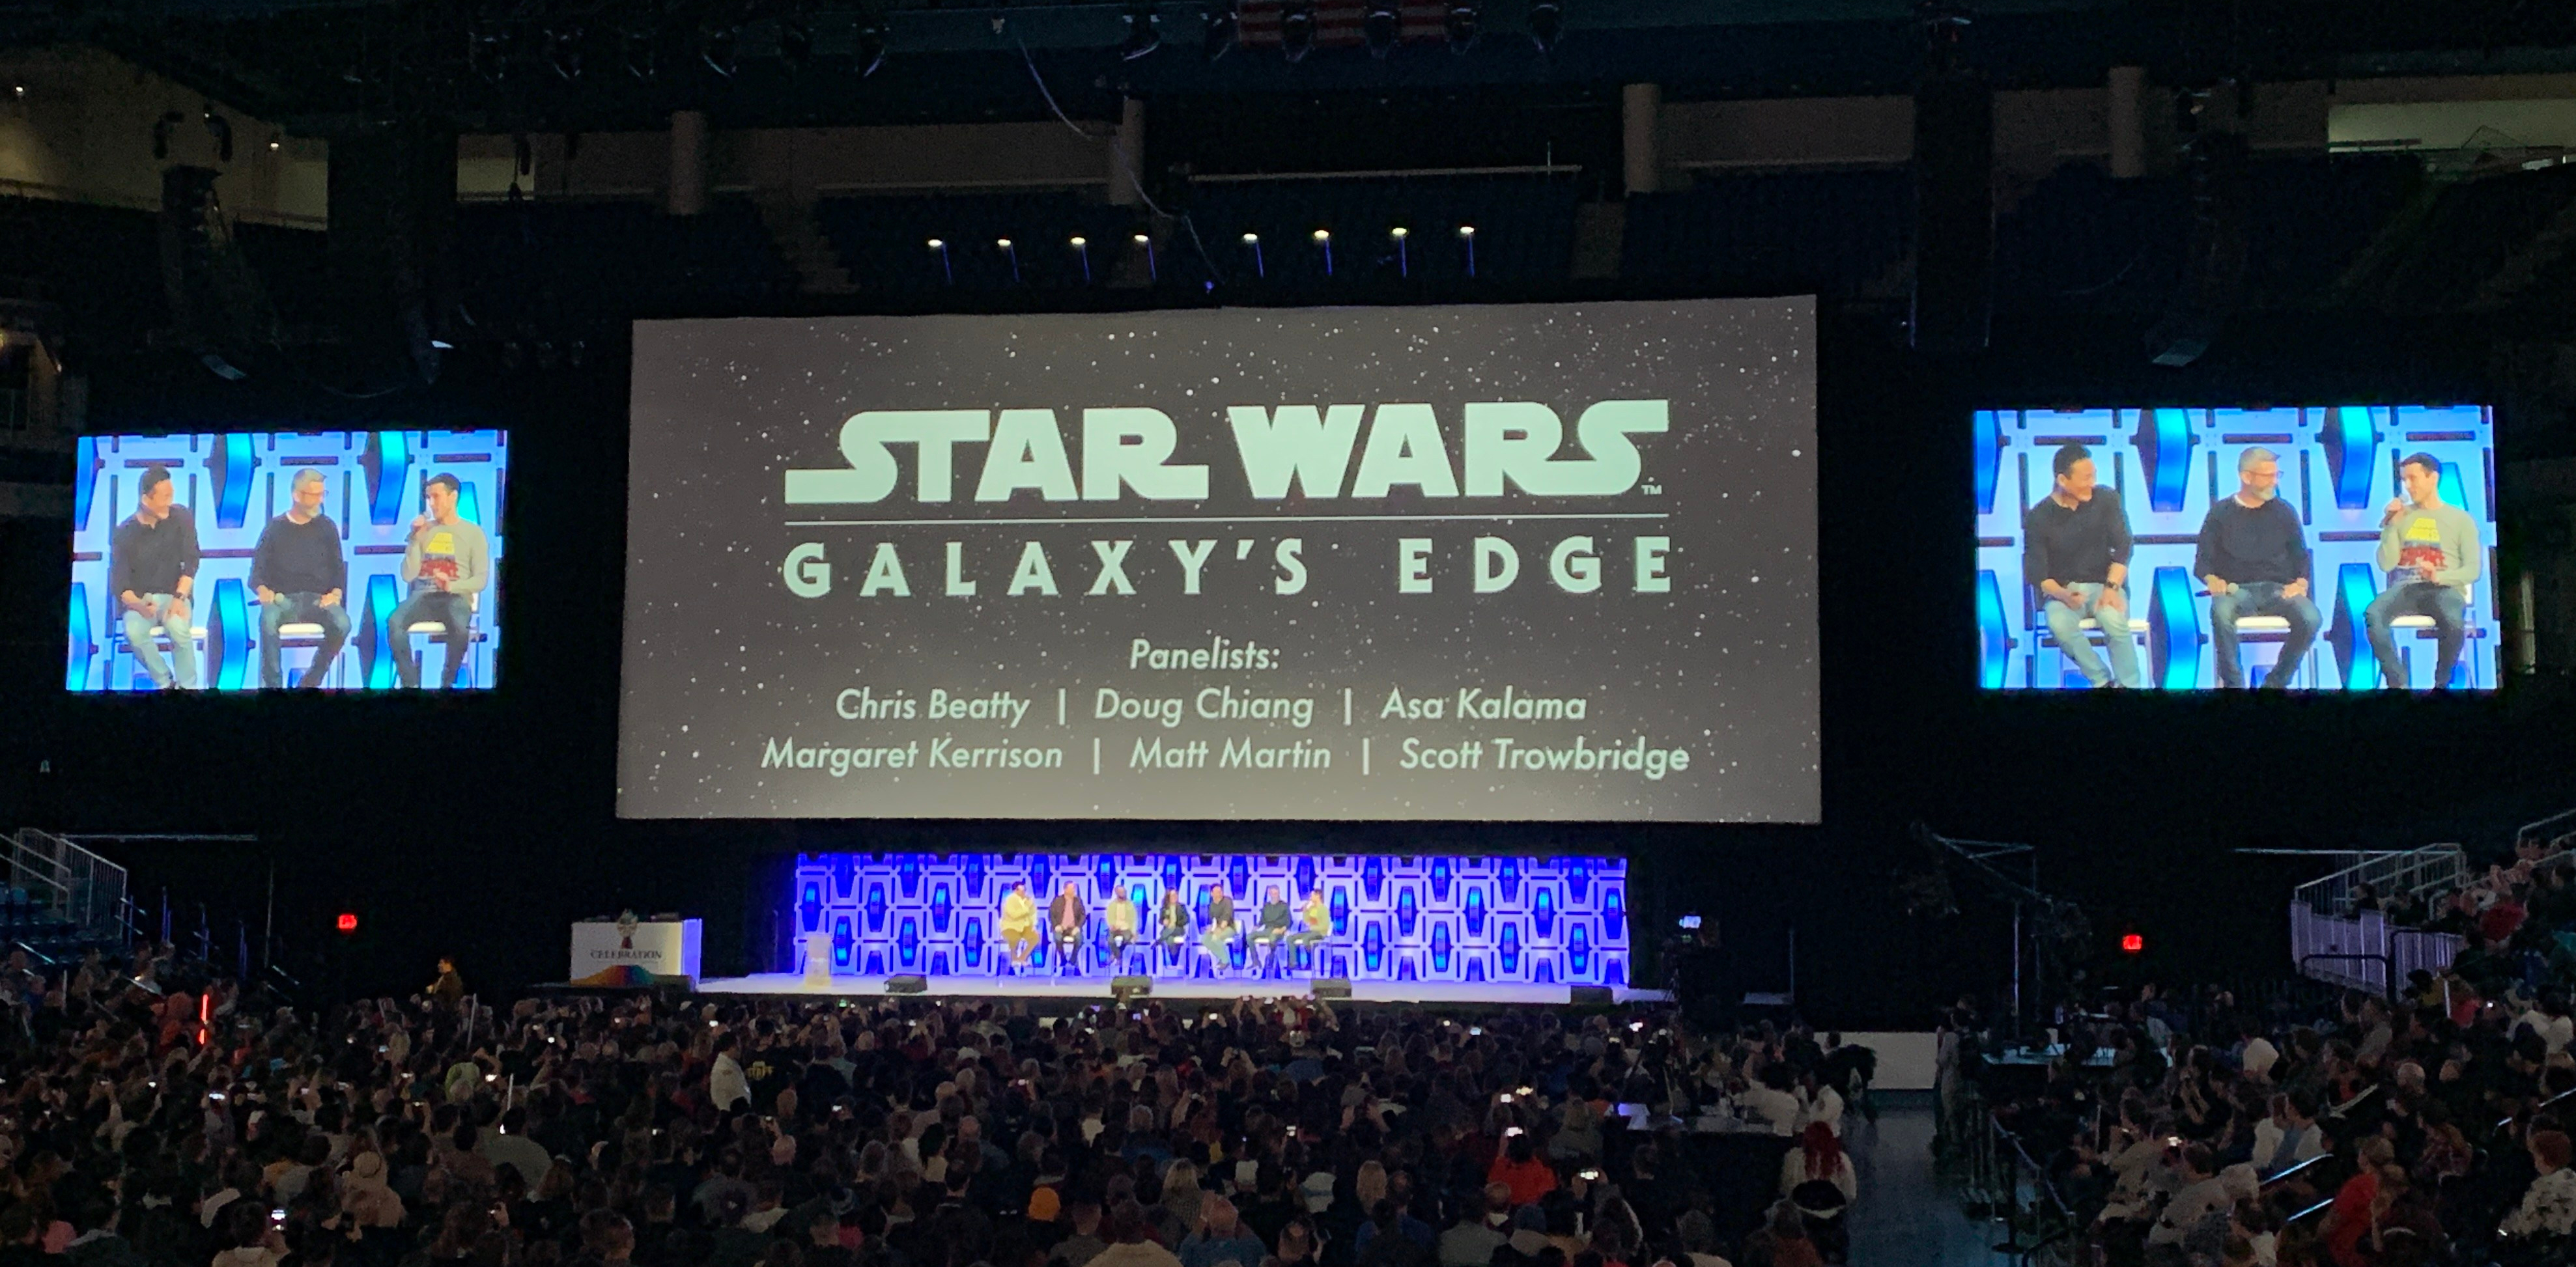 NOC Blasts Off to the 'Galaxy's Edge' During Star Wars Celebration